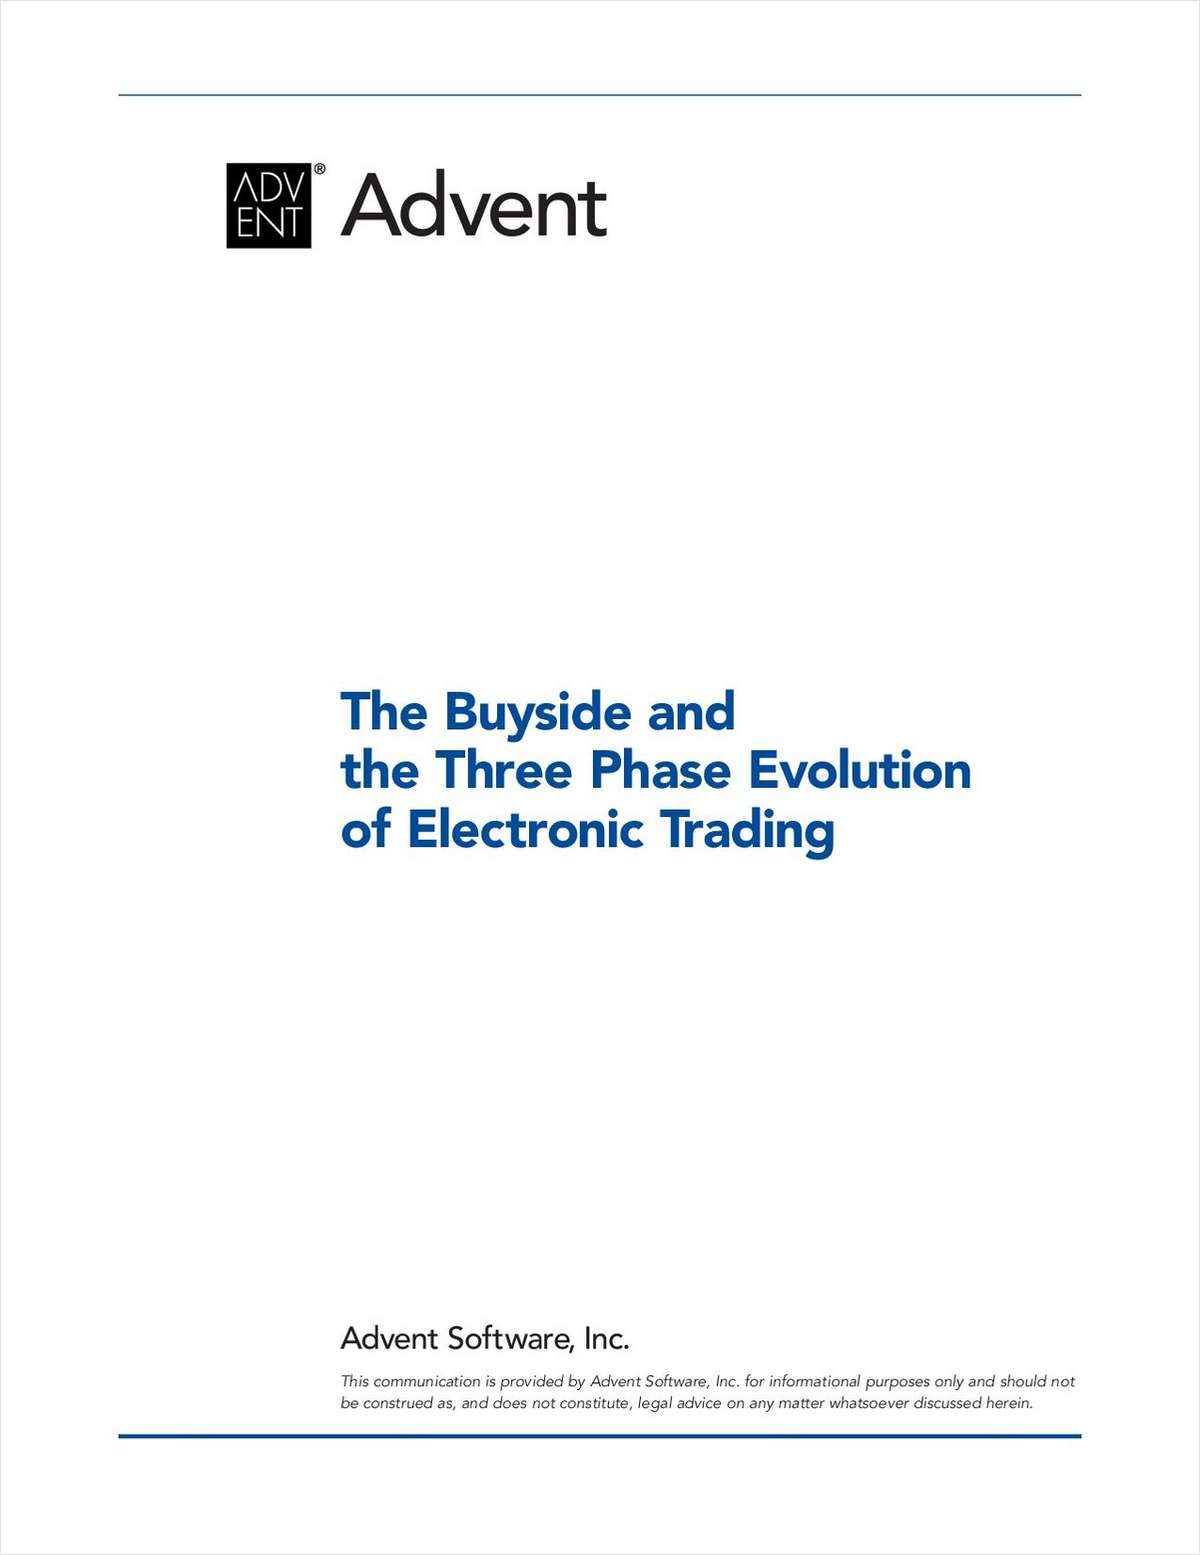 The Buyside and the Three-Phase Evolution of Electronic Trading